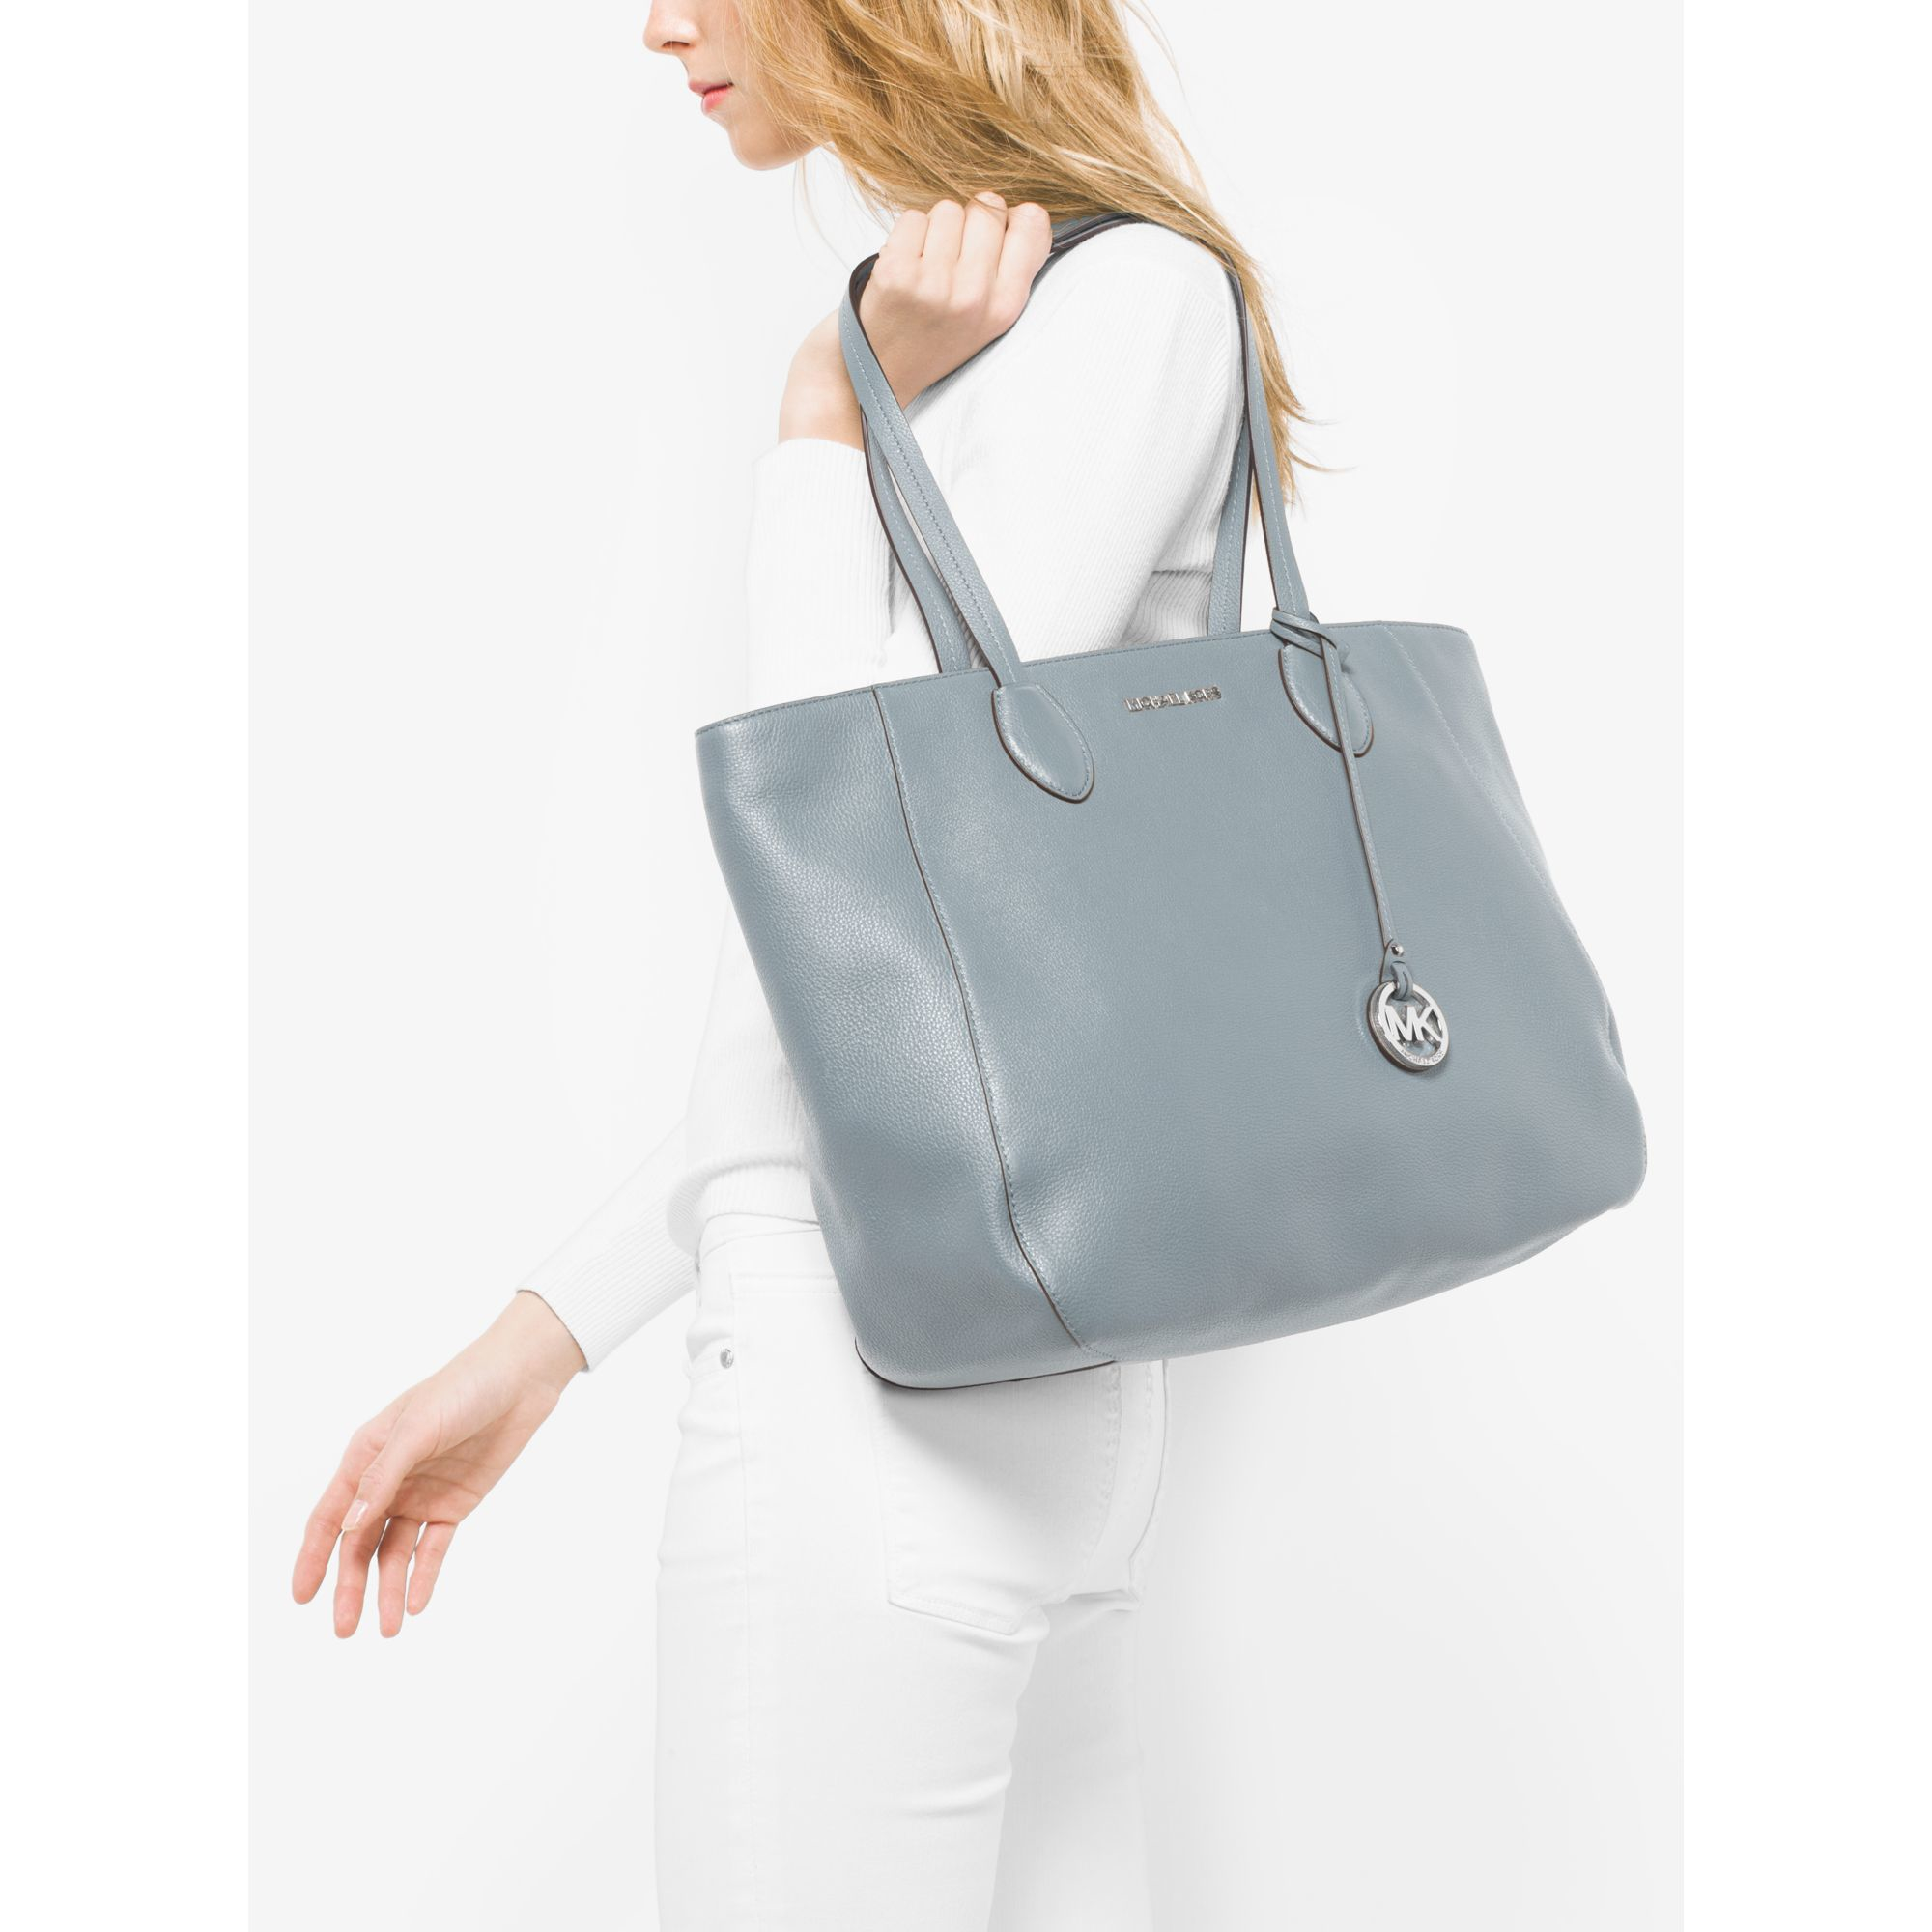 7a1dce5edd03 Lyst - Michael Kors Ani Large Leather Tote in Blue